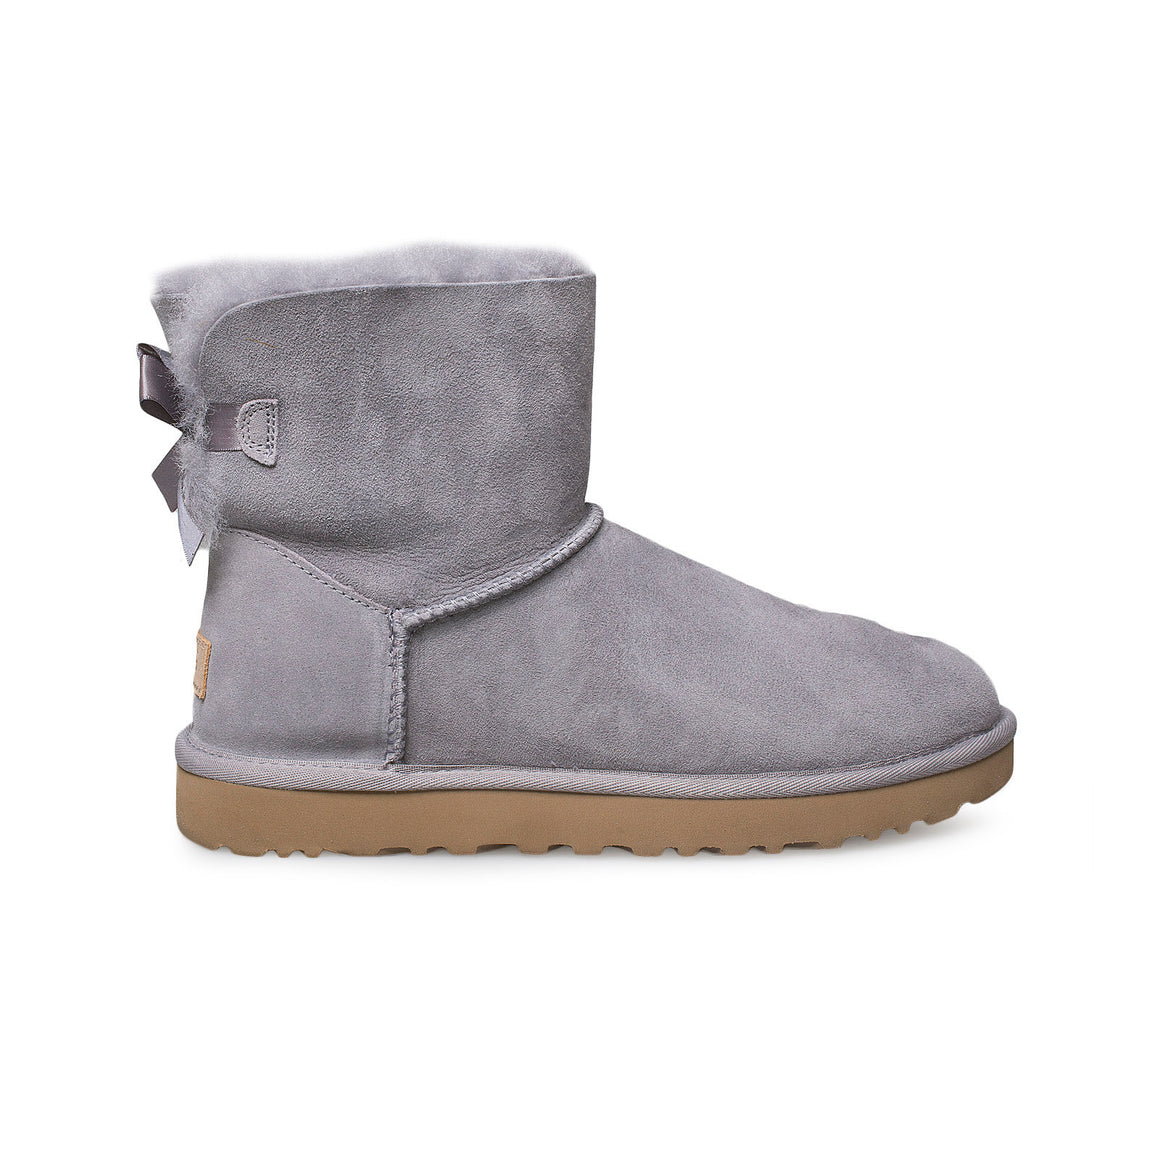 UGG Mini Bailey Bow II Soft Amethyst Boots - Women's